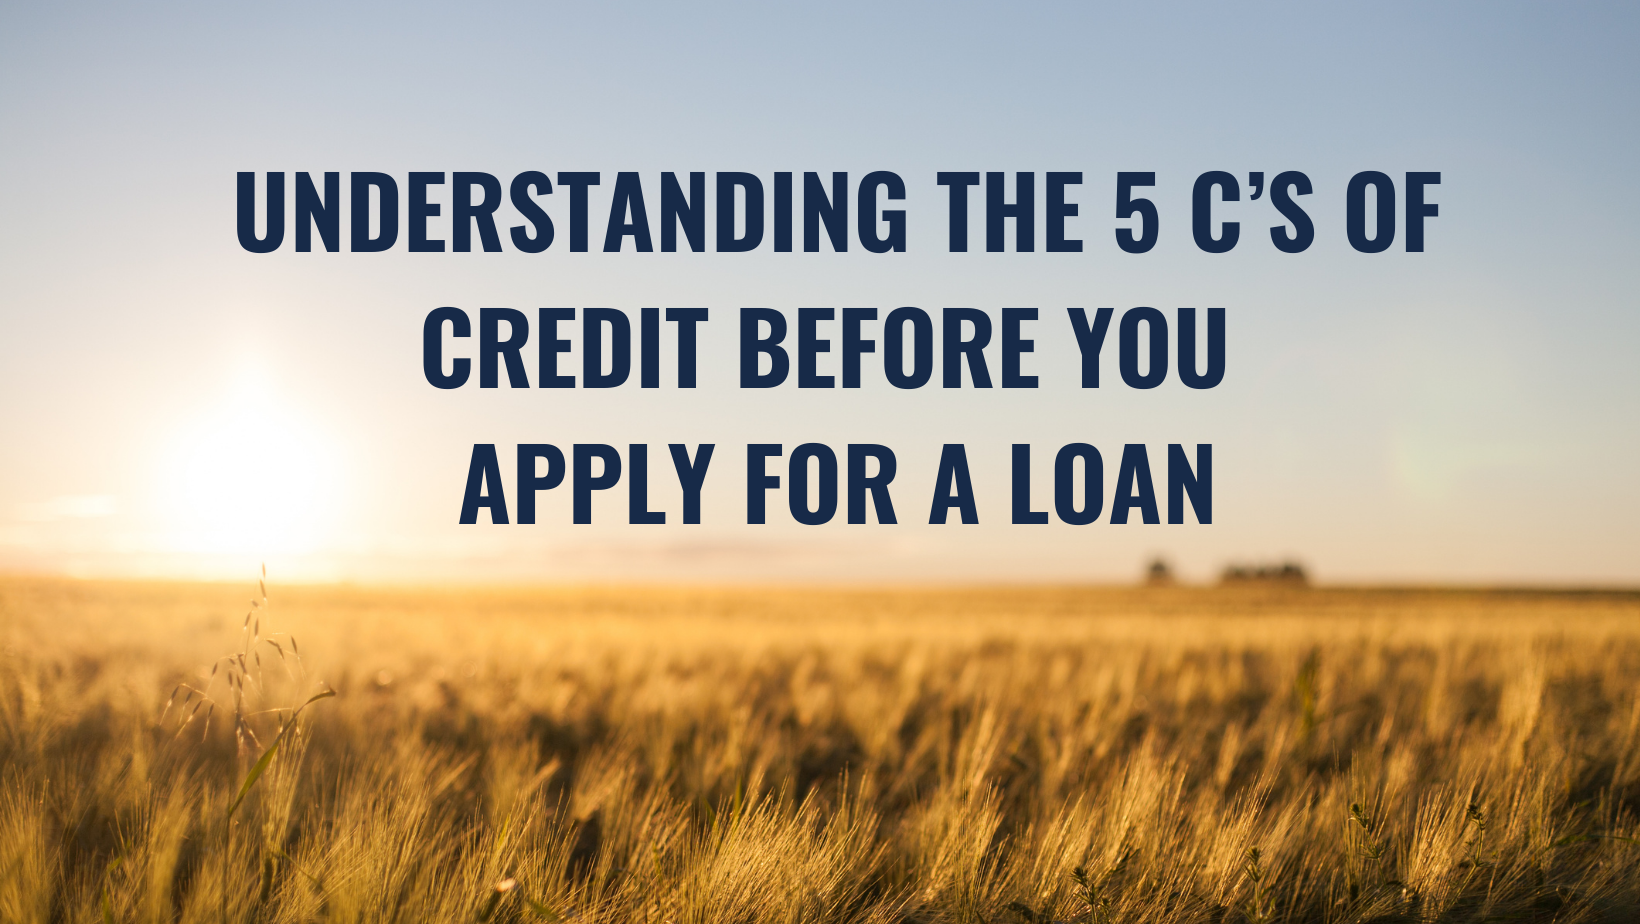 picture of field. Understanding the 5C's of Credit